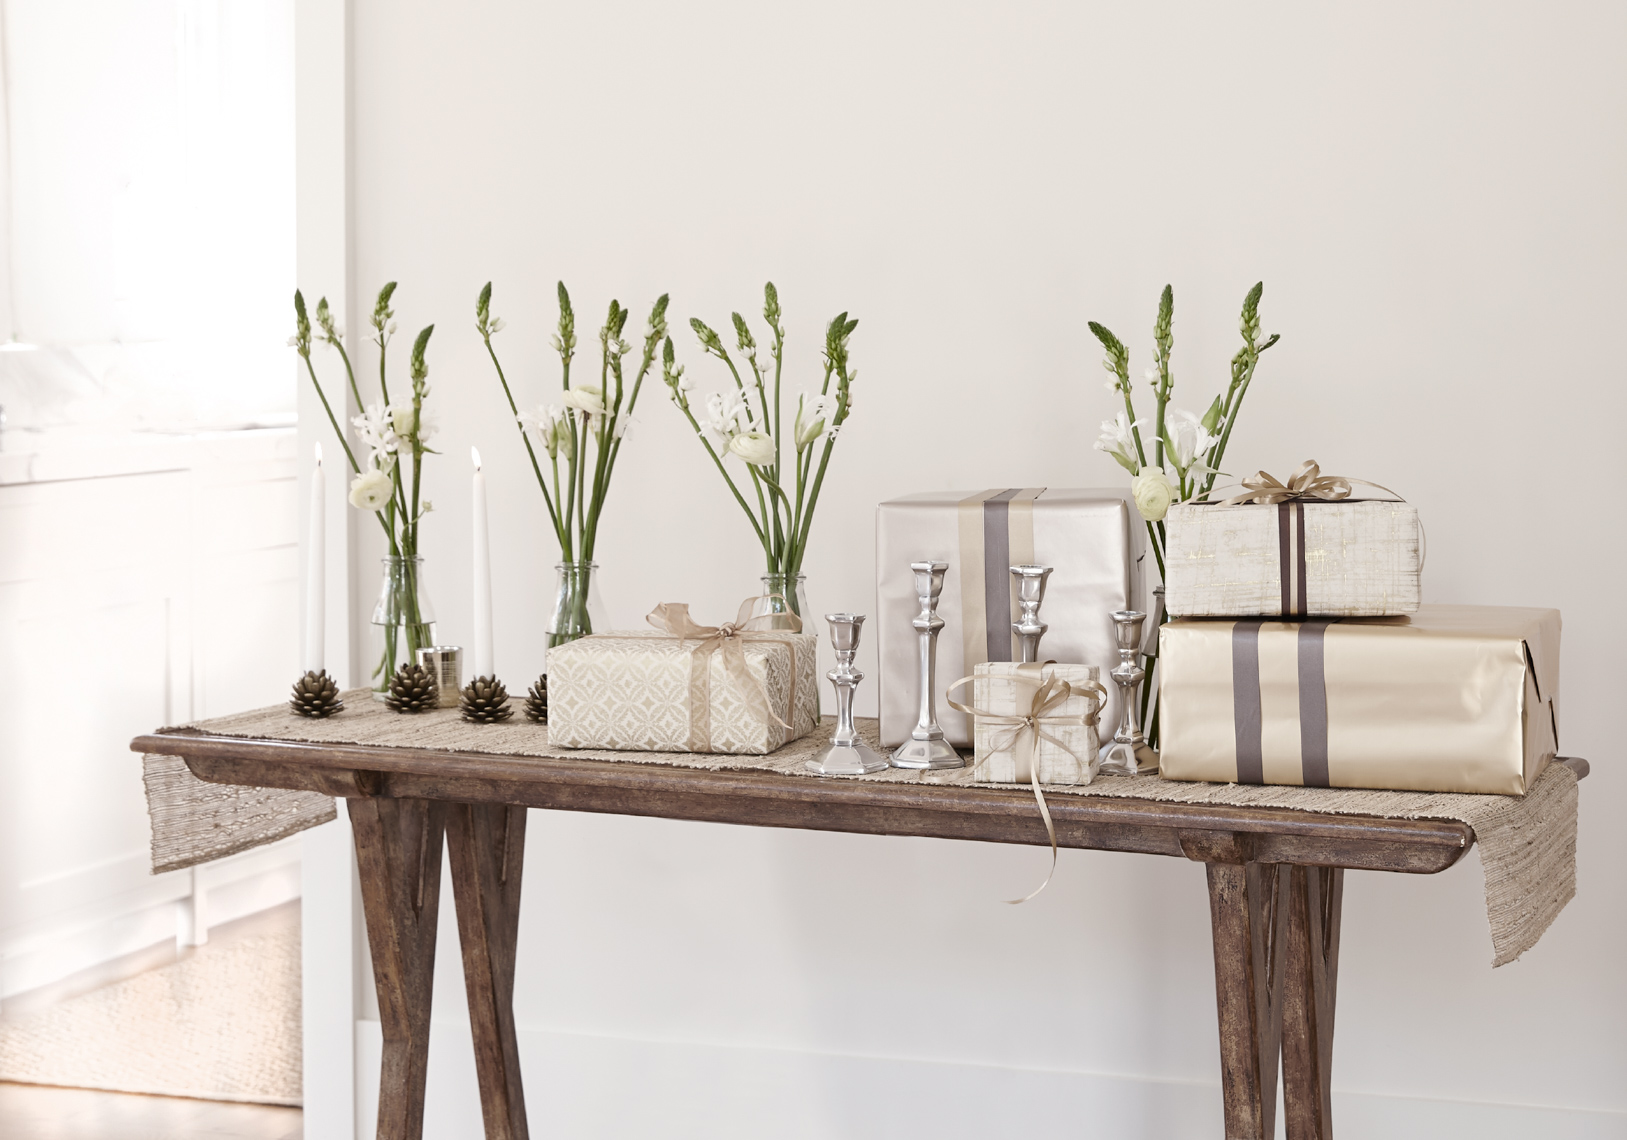 wedding gifts and candlesticks on thin wooden table with beige table-runner San Francisco interior photographer